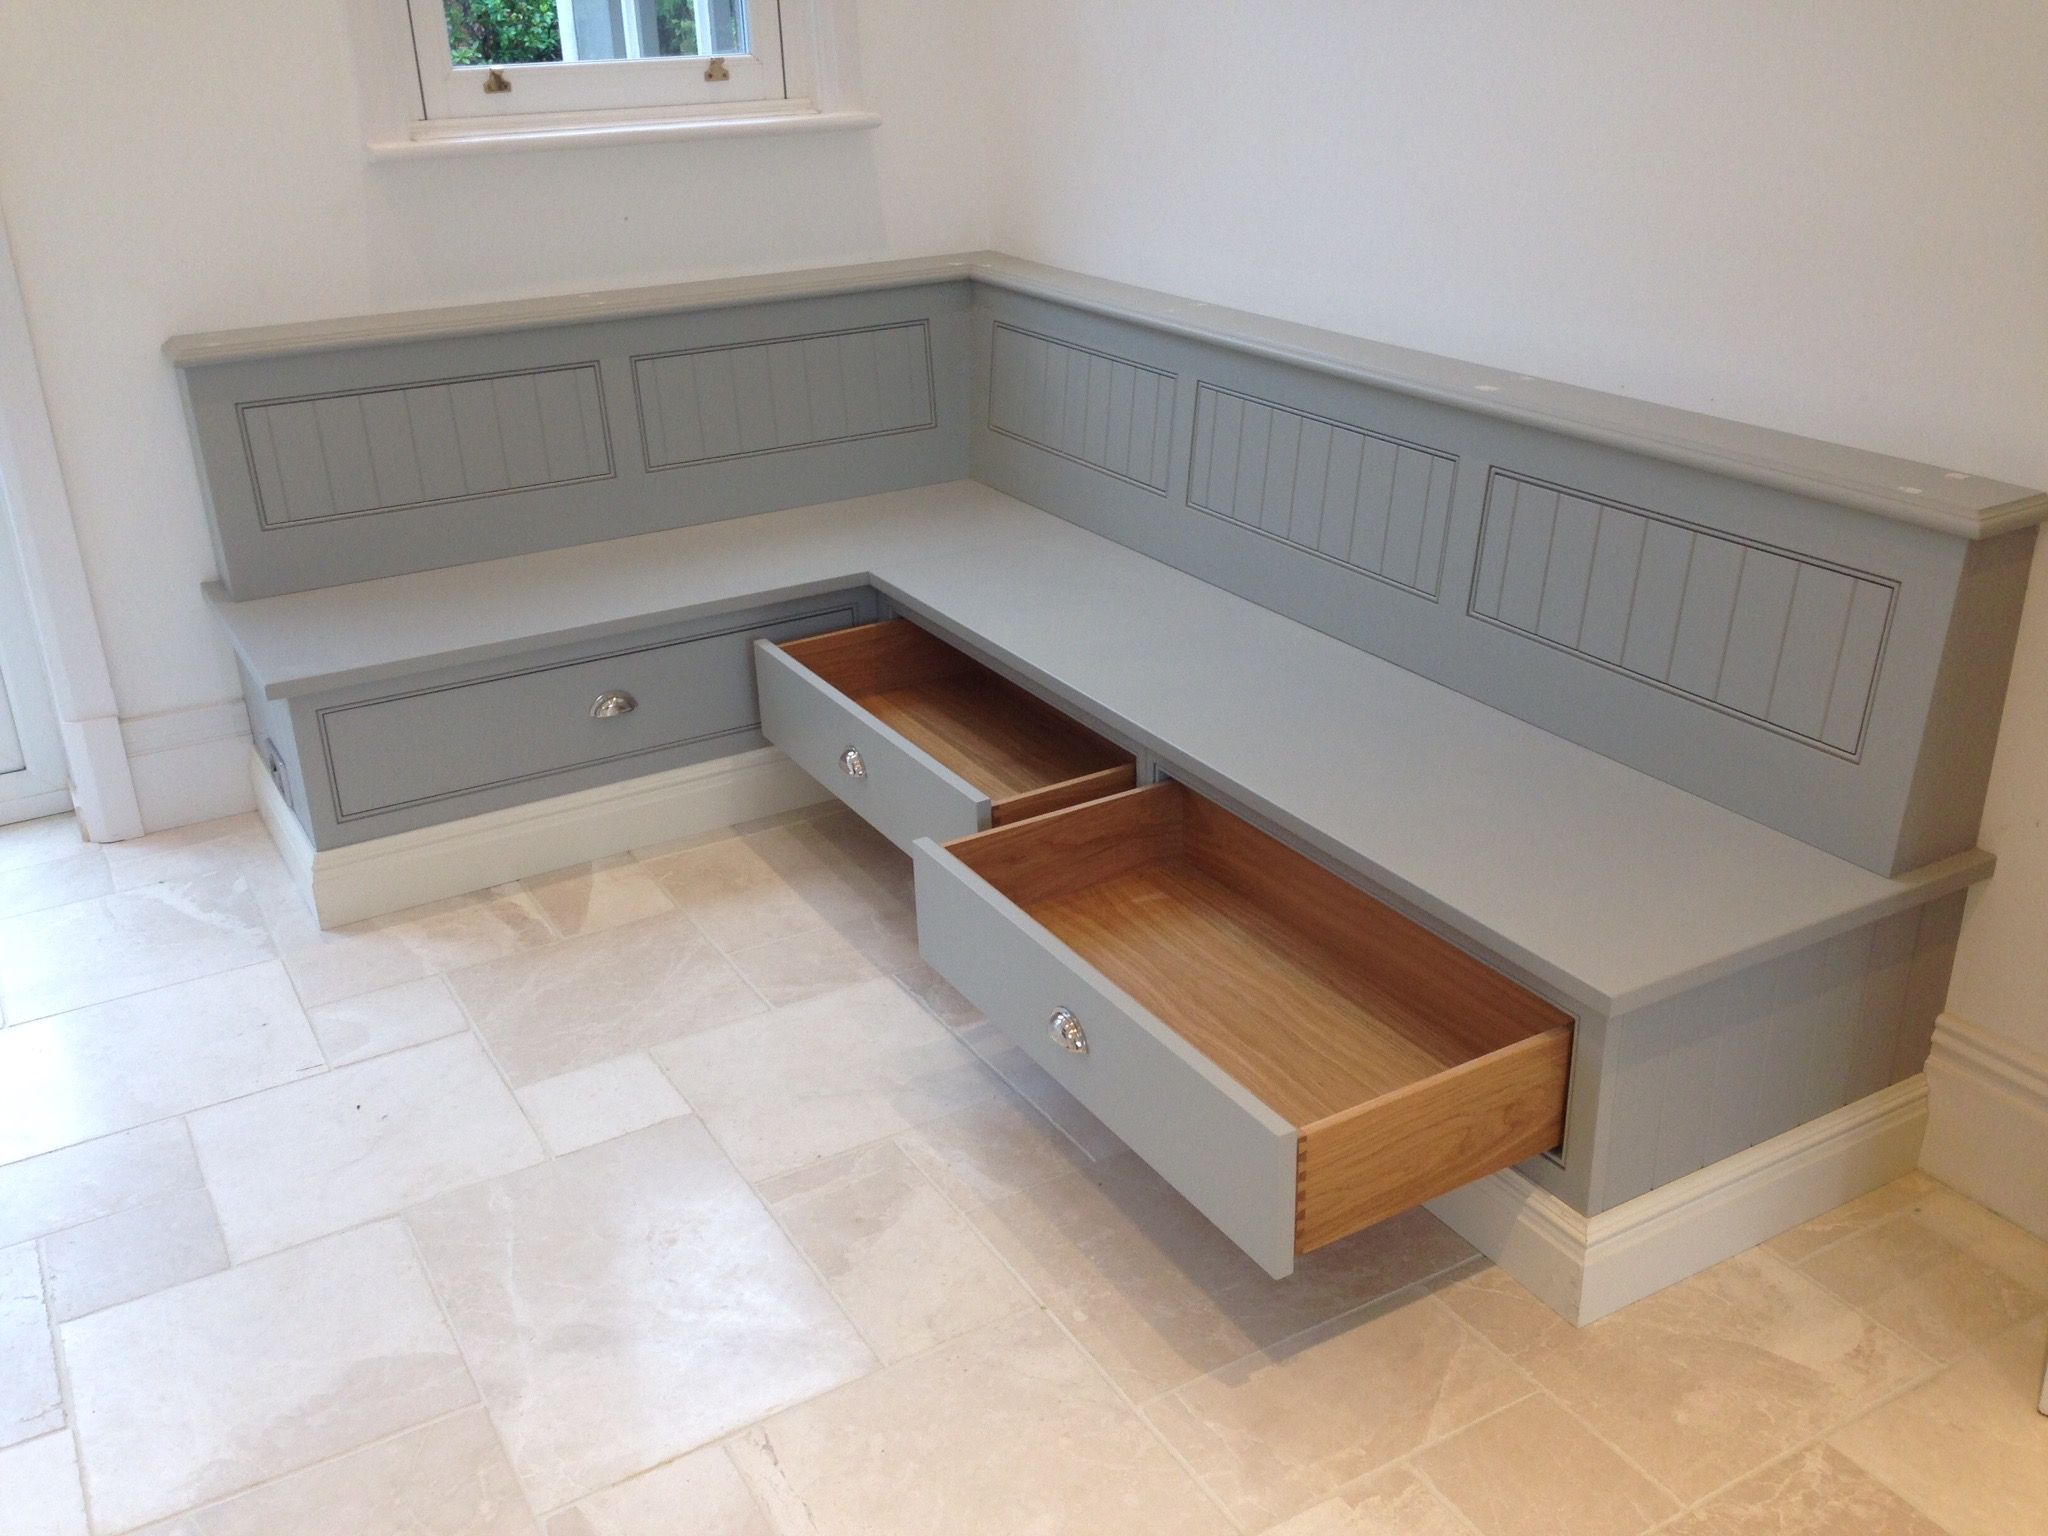 Tom Howley Bench Seat With Storage Draws Banquettes Pinterest Bench Seat Bench And Toms